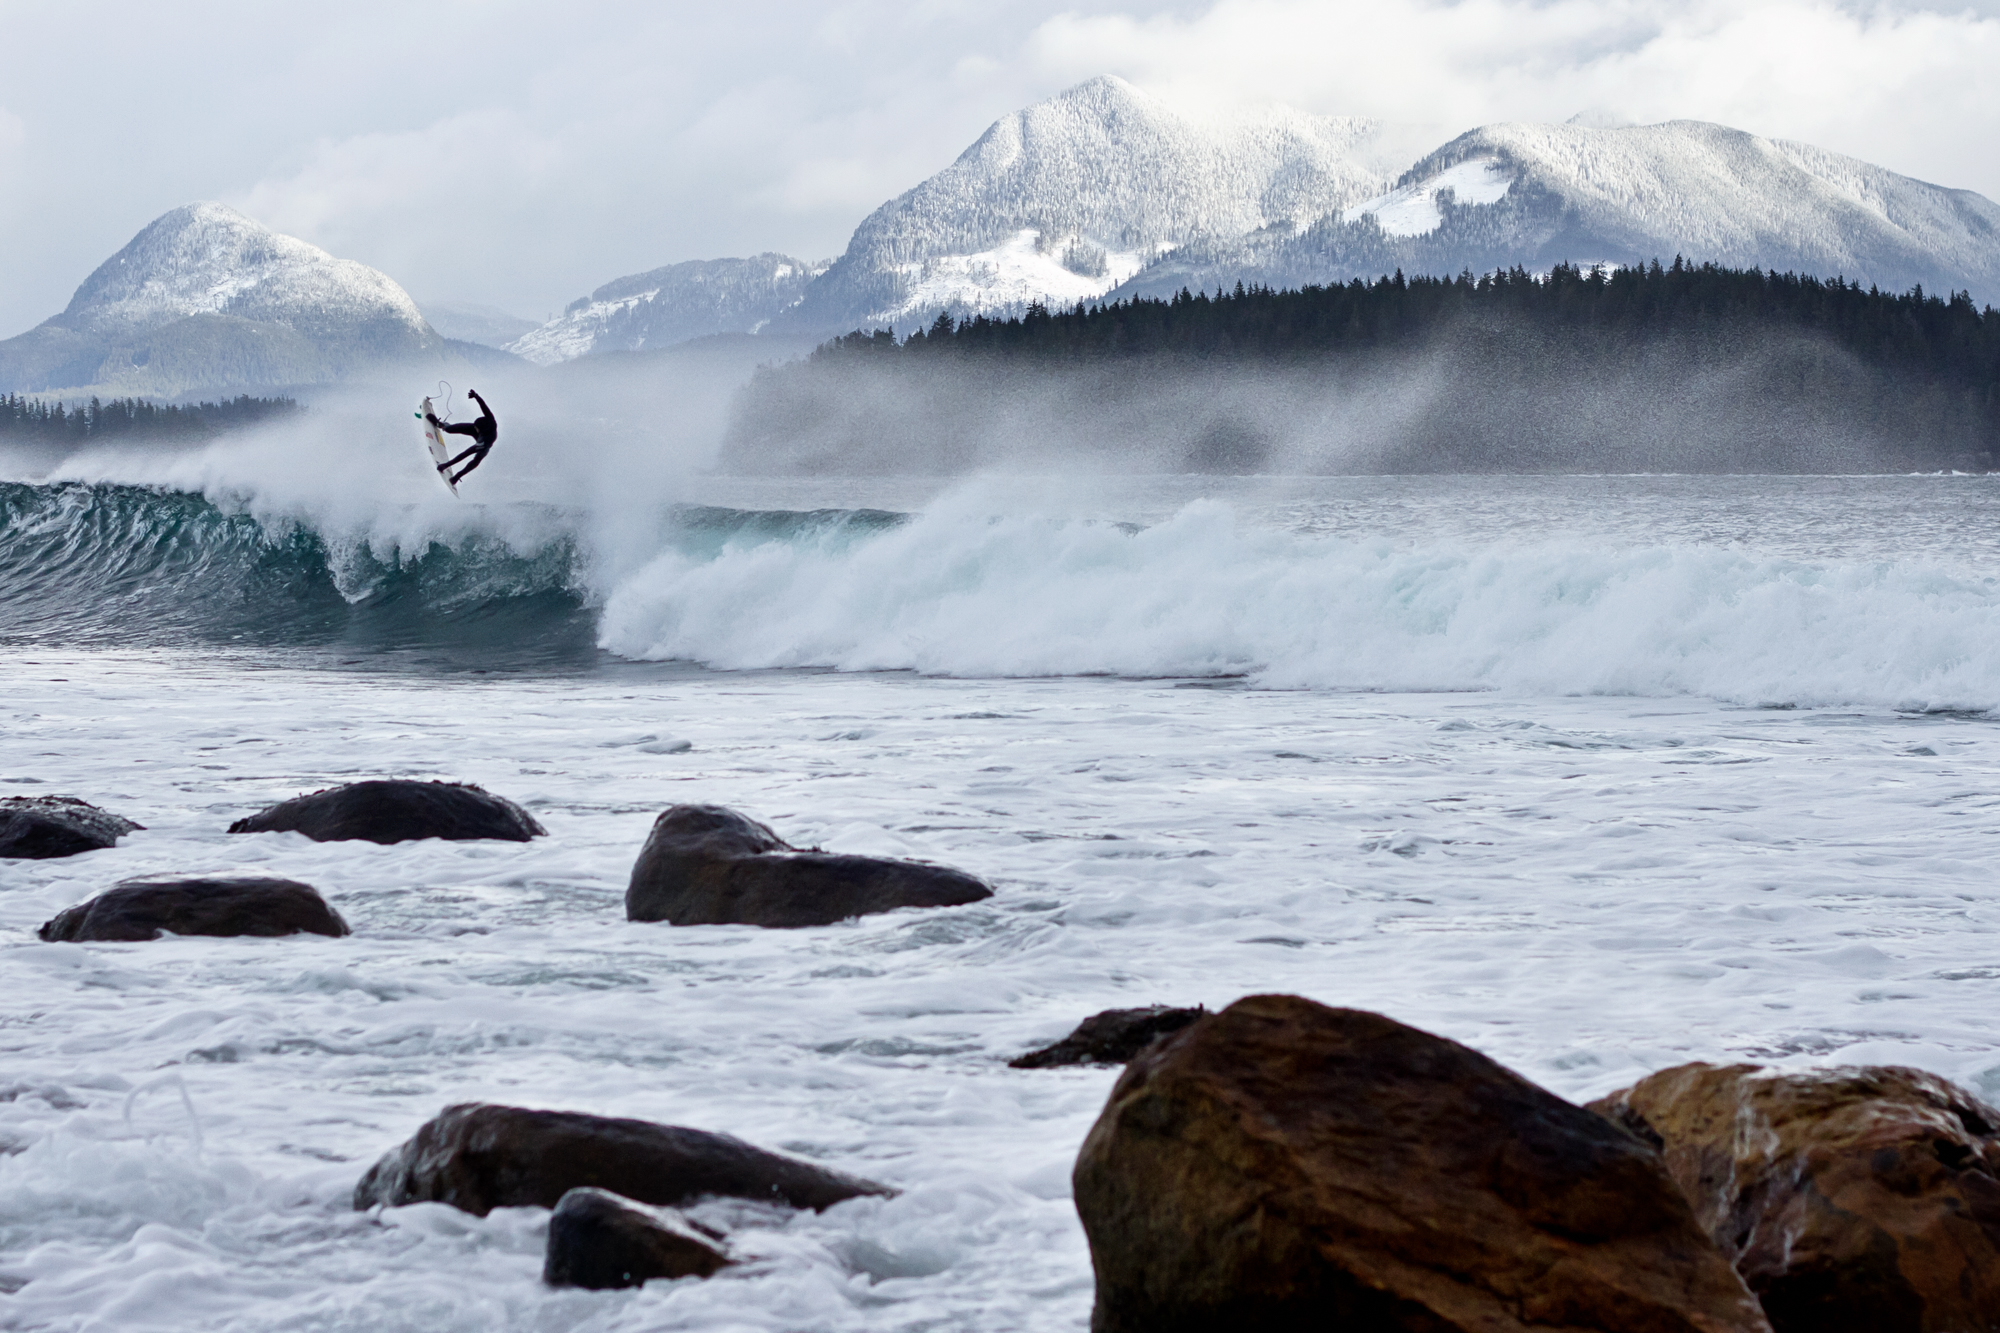 A surfer in the air above a large wave with snow-capped mountains in the background.